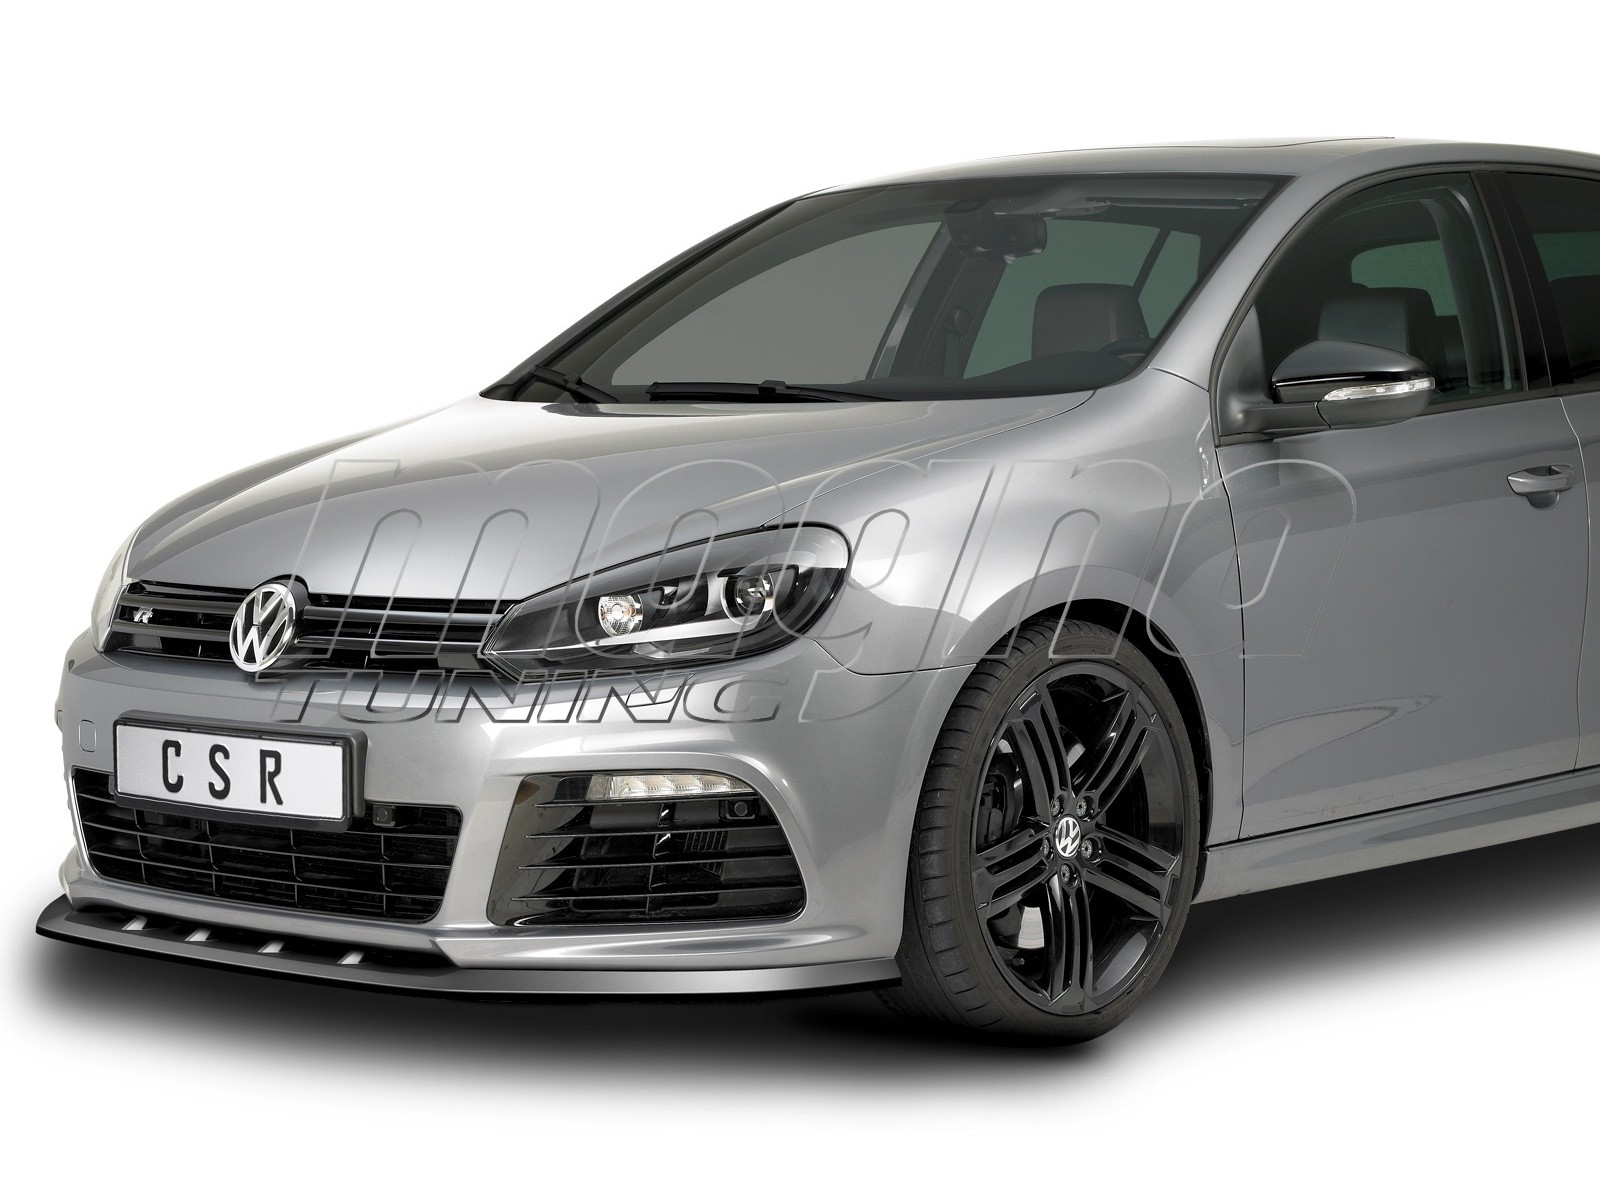 vw golf 6 r line citrix front bumper extension. Black Bedroom Furniture Sets. Home Design Ideas